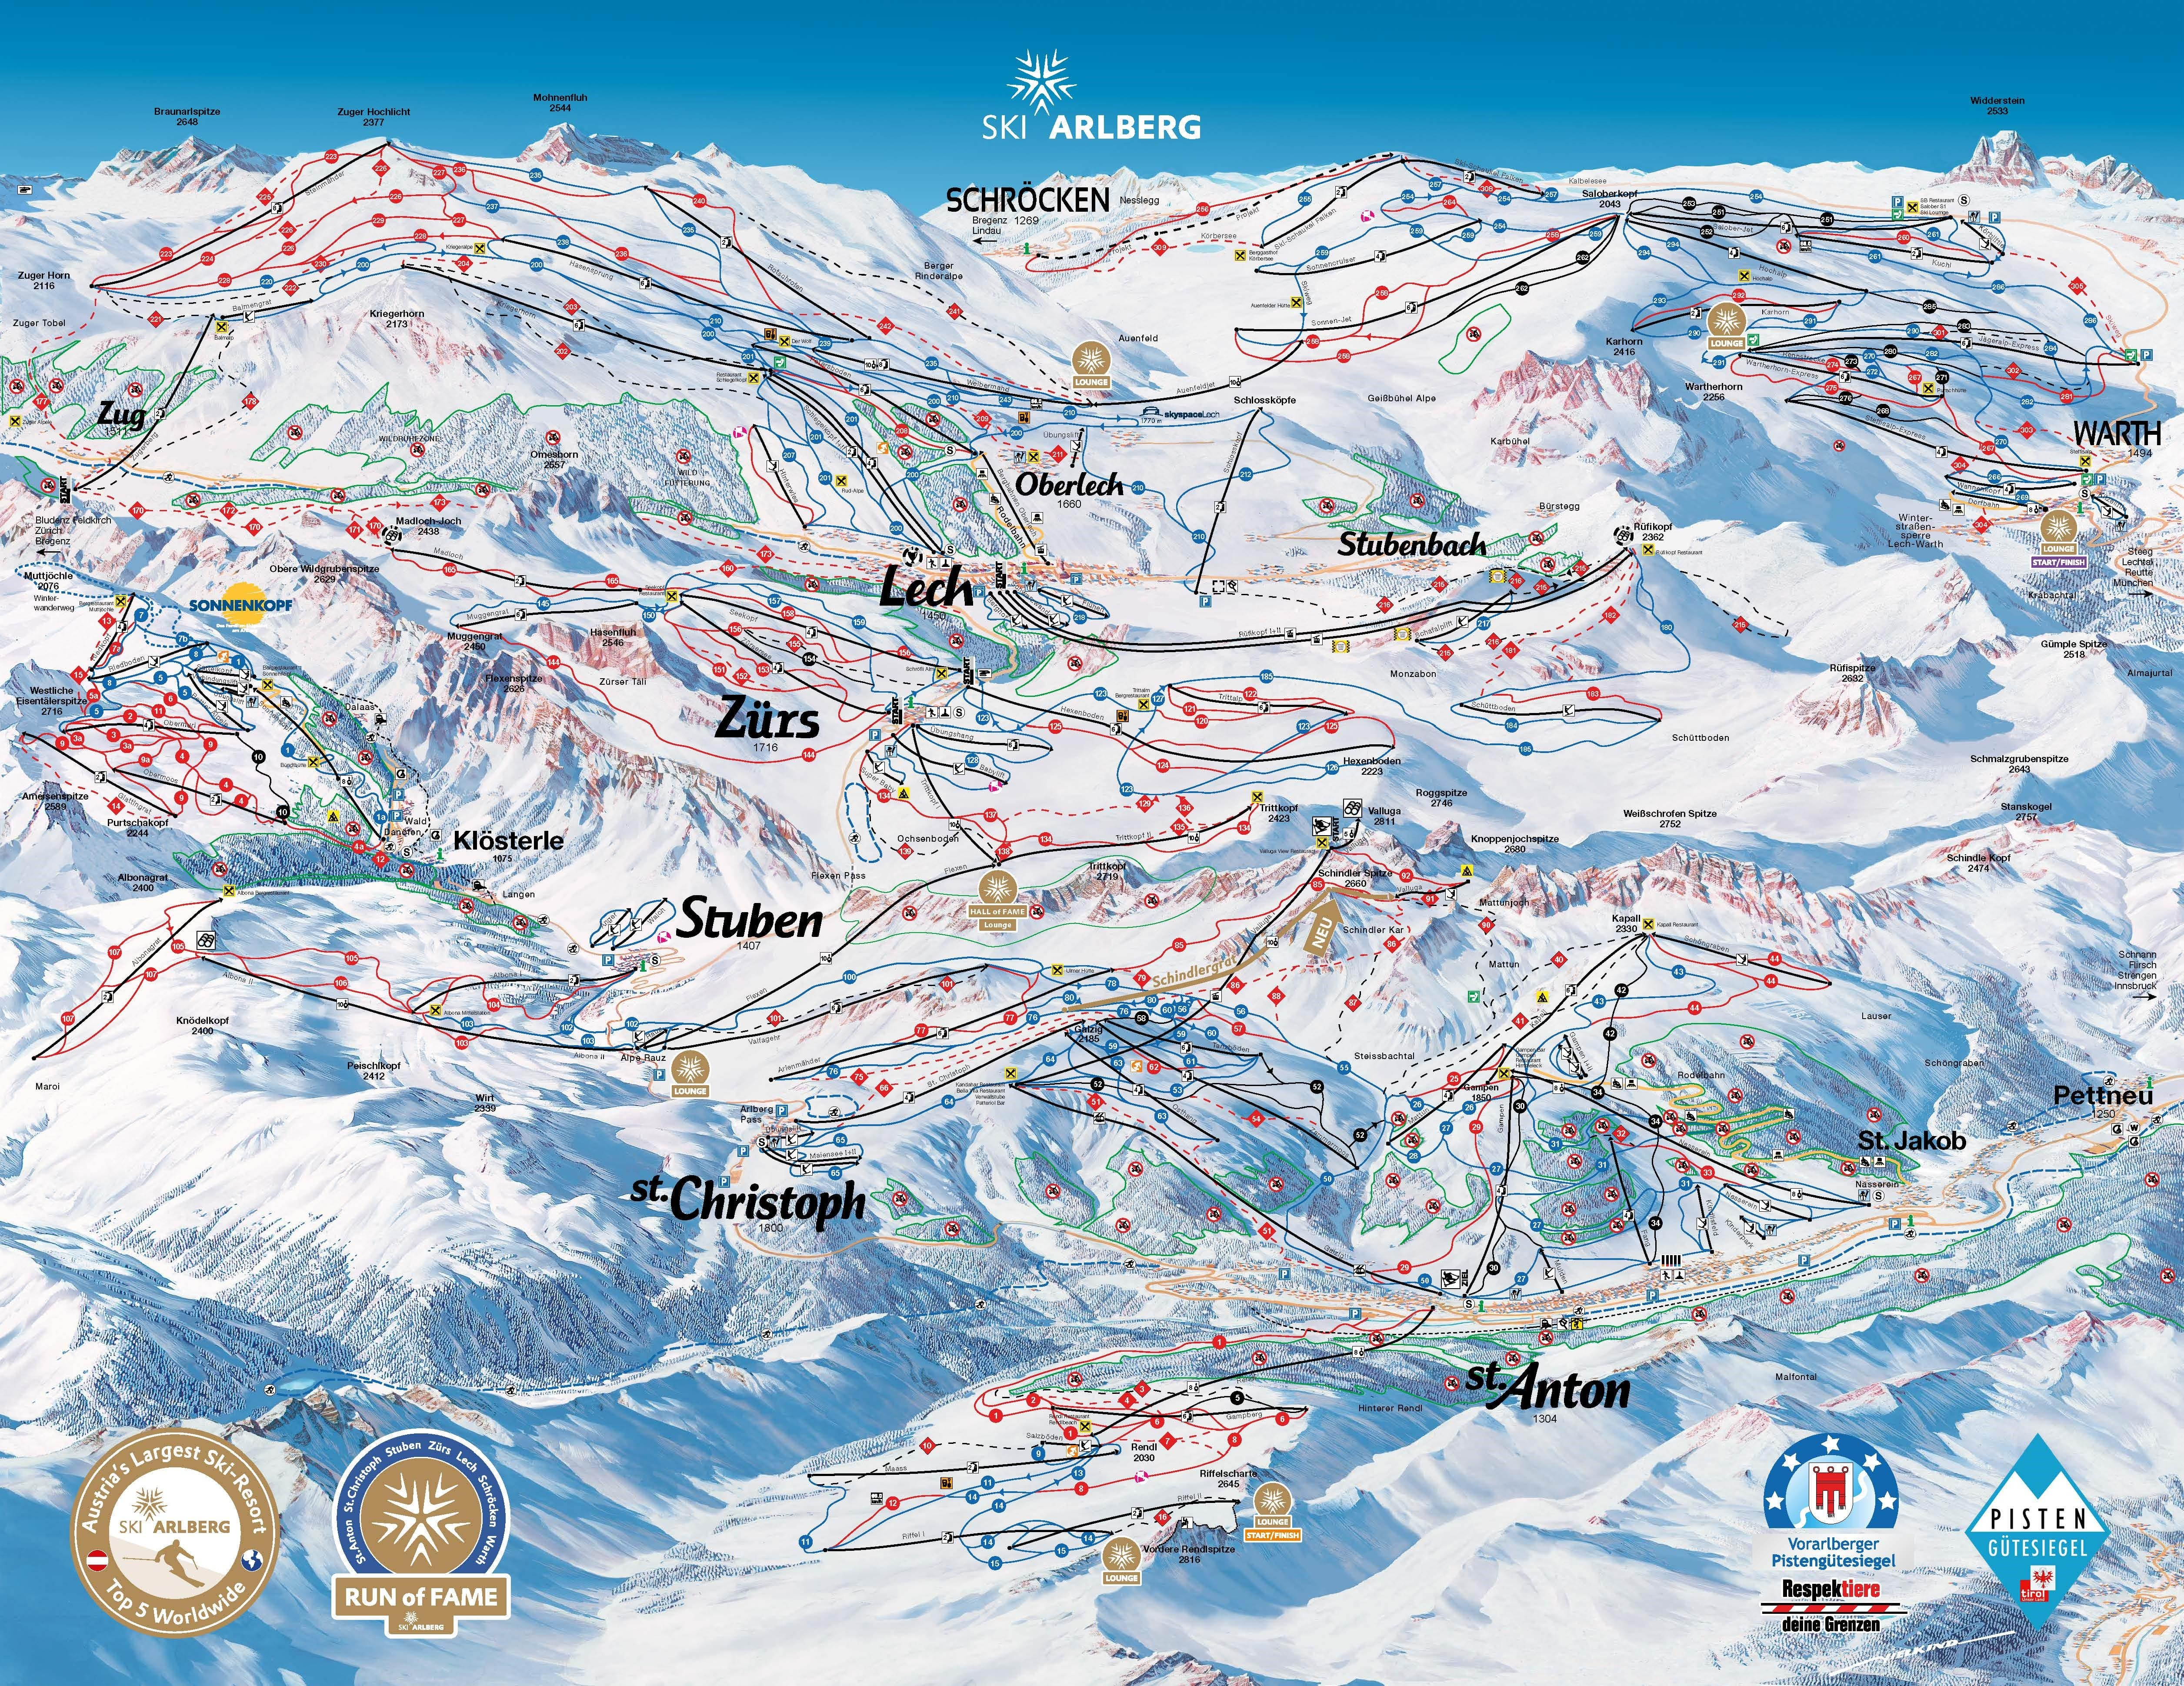 St. Anton Piste / Trail Map